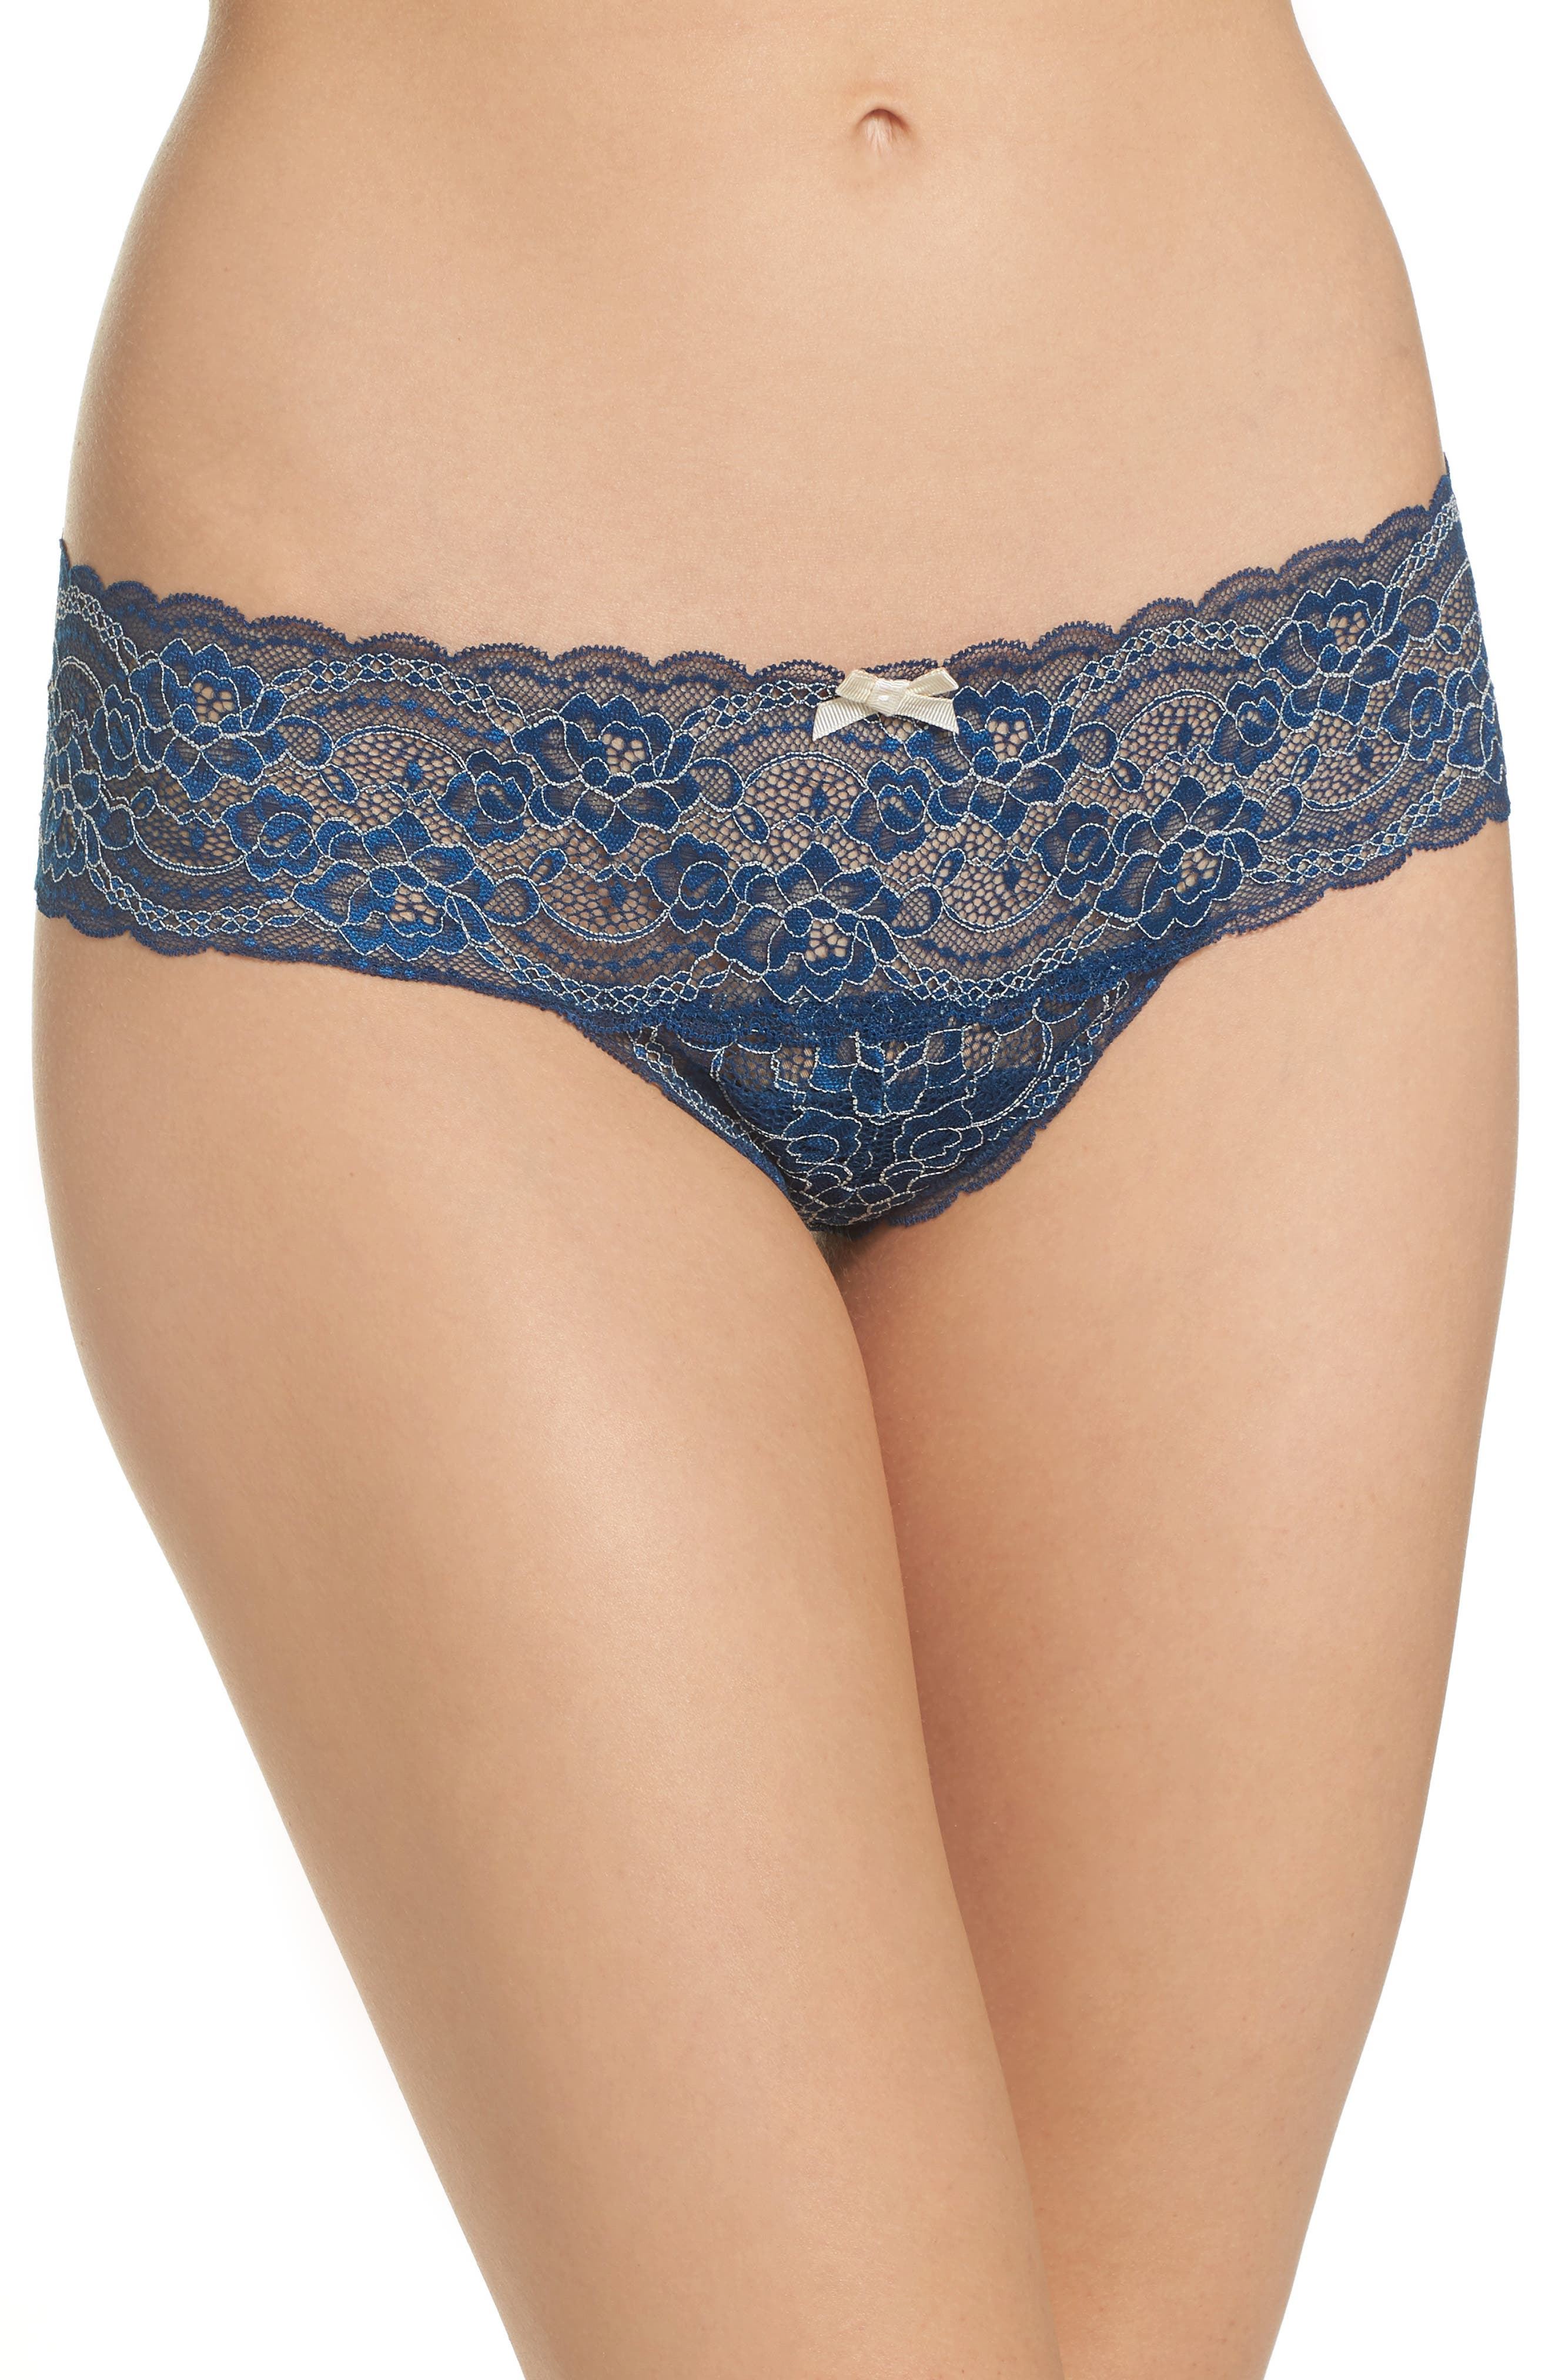 'Obsessed' Lace Thong,                         Main,                         color, 422